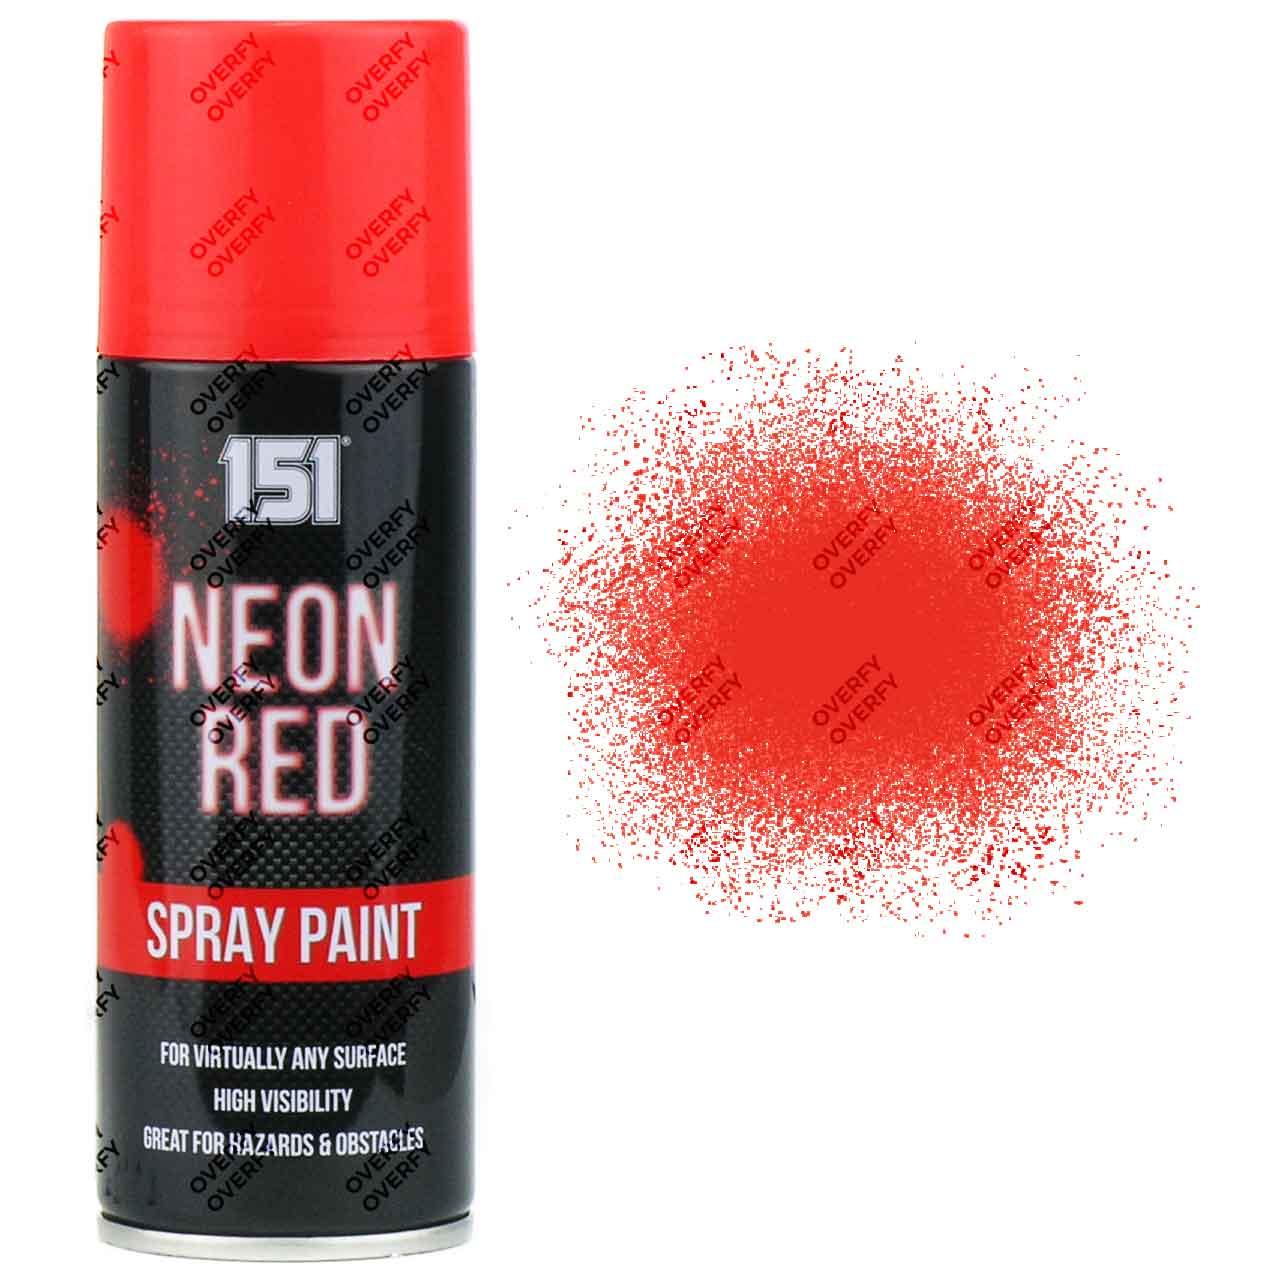 Neon Red 151